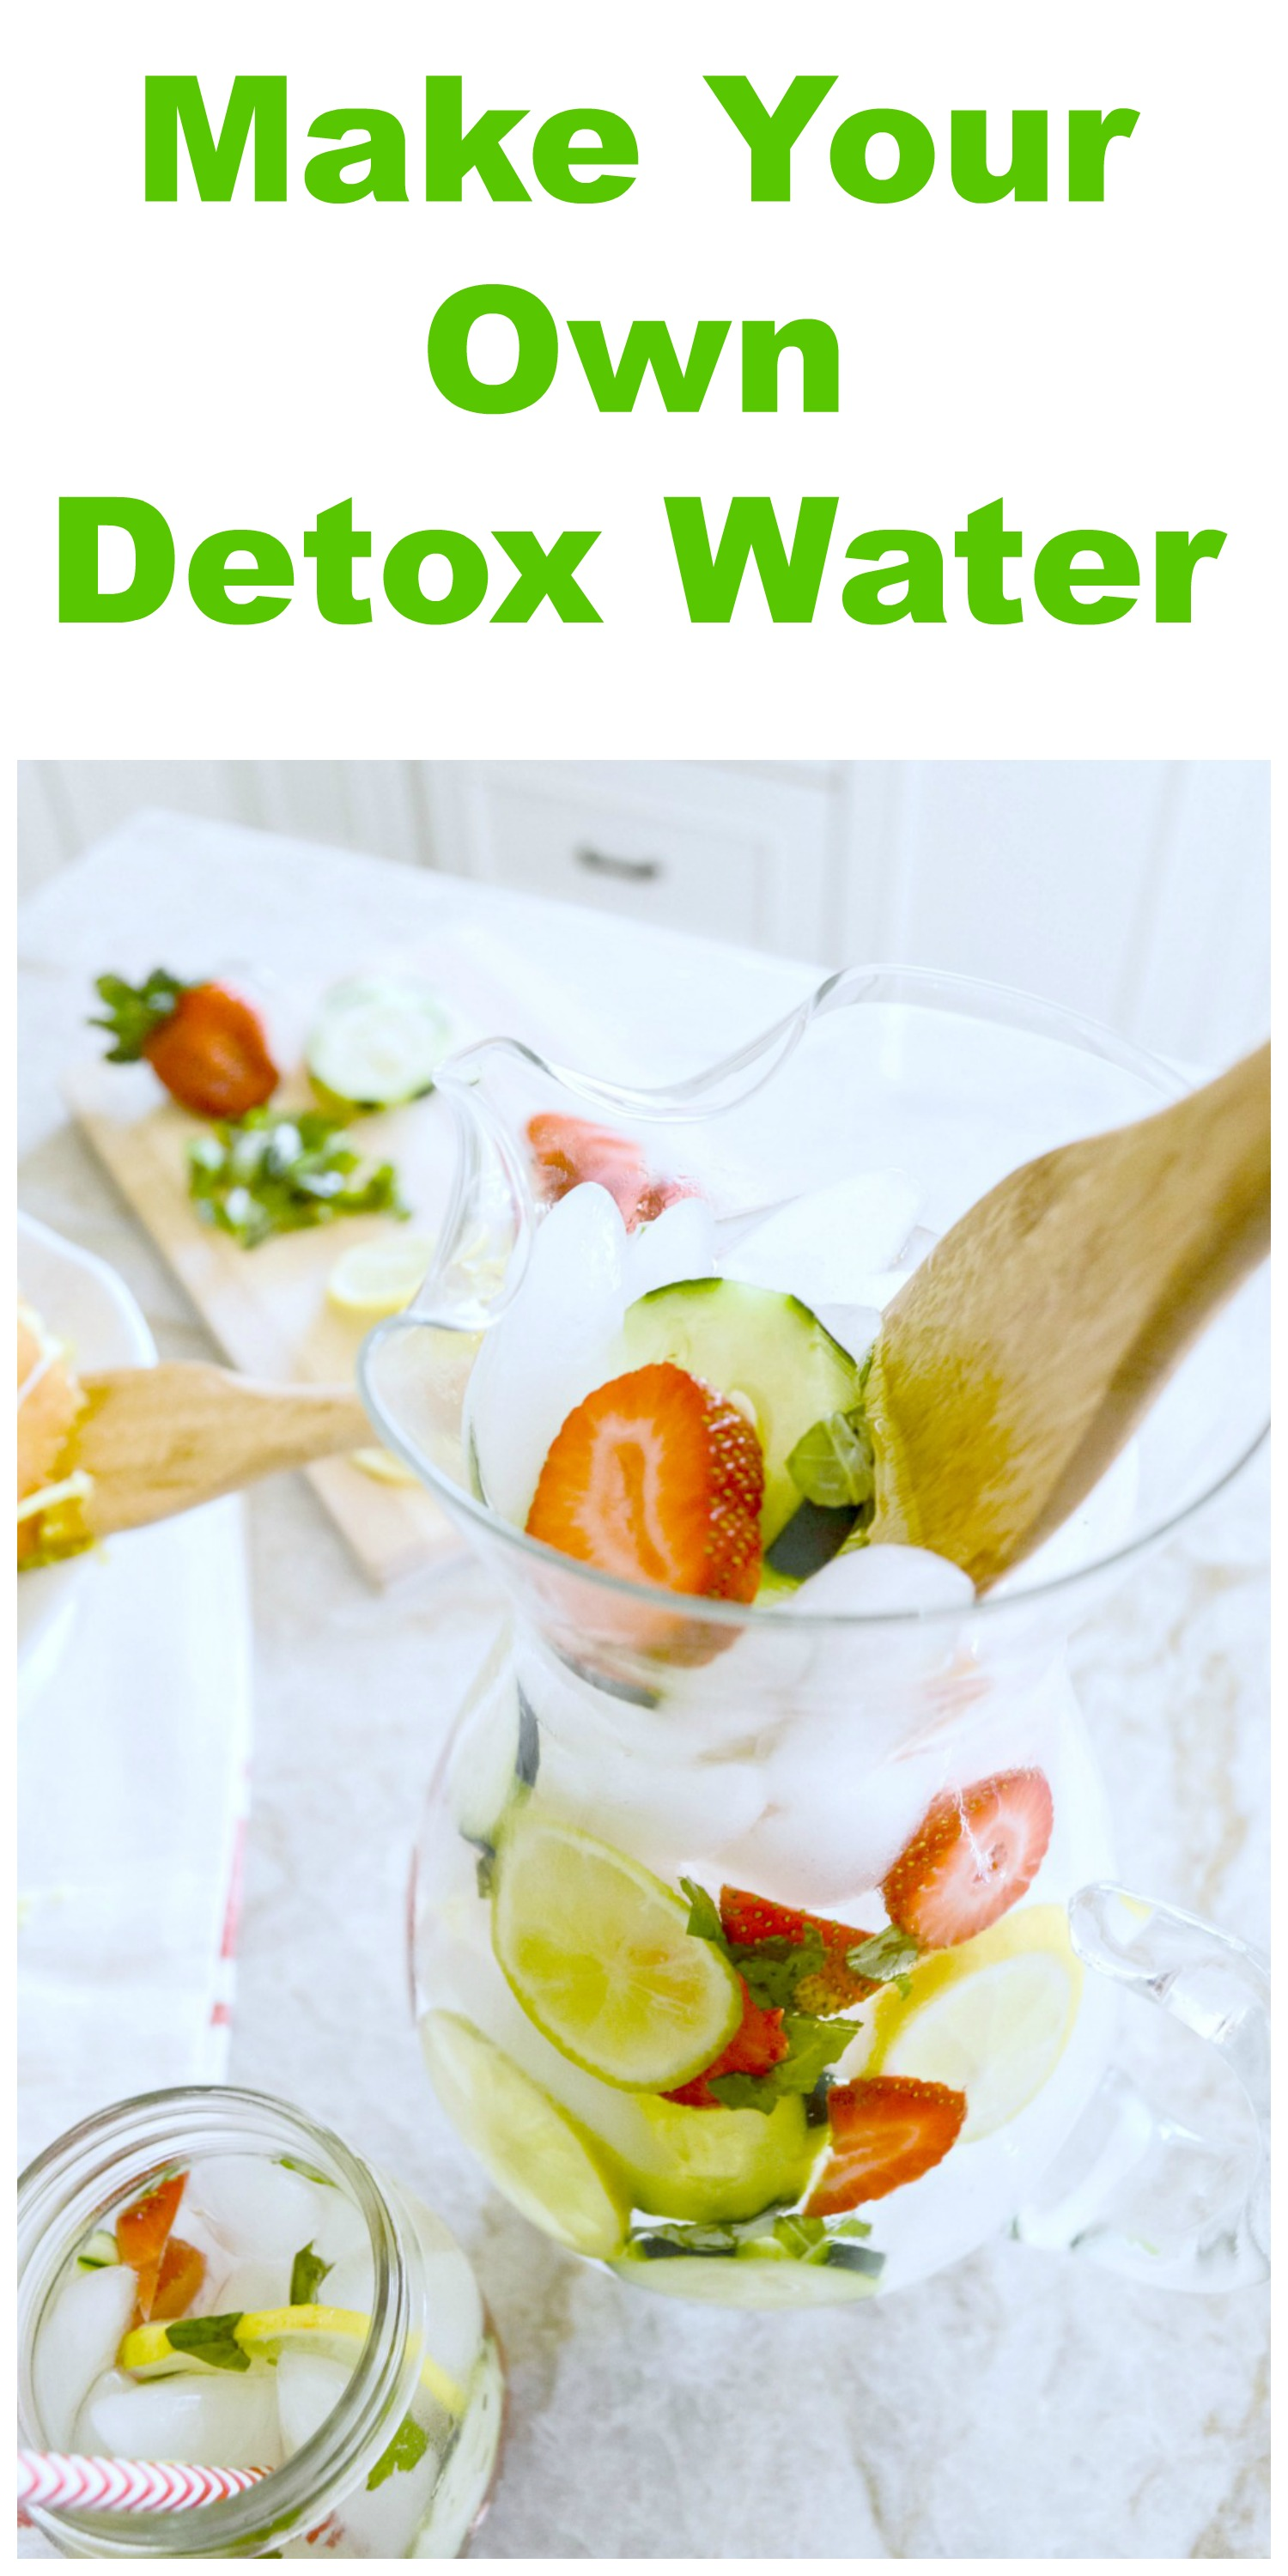 Ice Water (24 ounces) 3 Basil leaves chopped 1 strawberry sliced 3 slices of cucumber 3 slices of lemon